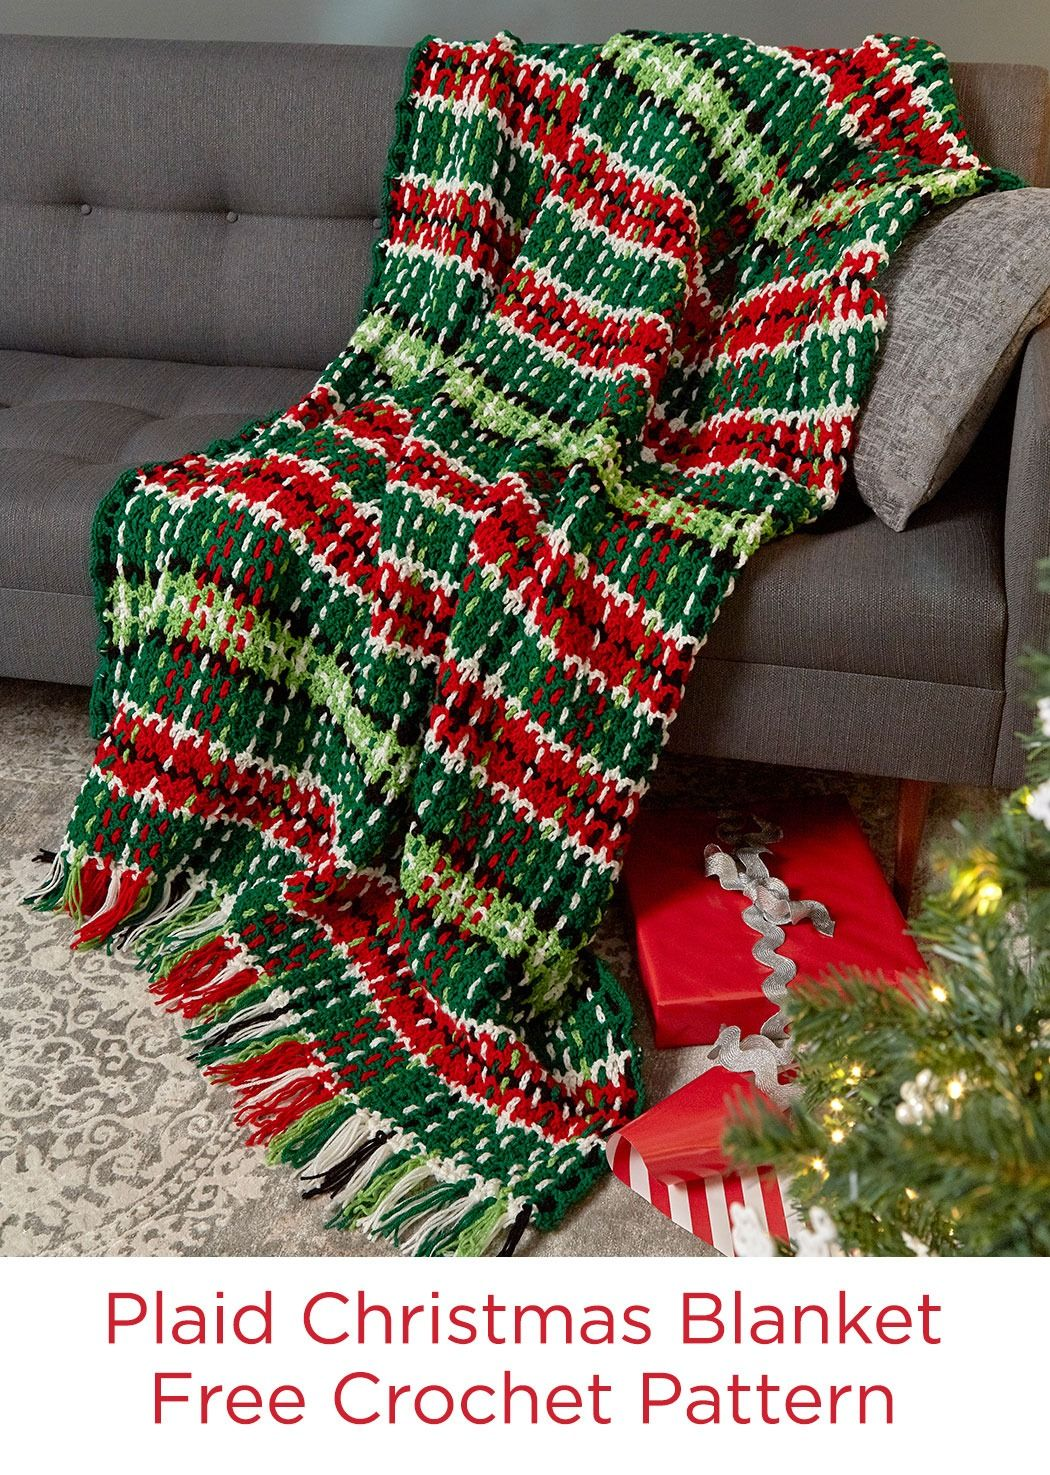 Plaid Christmas Blanket Free Crochet Pattern in Red Heart Super ...